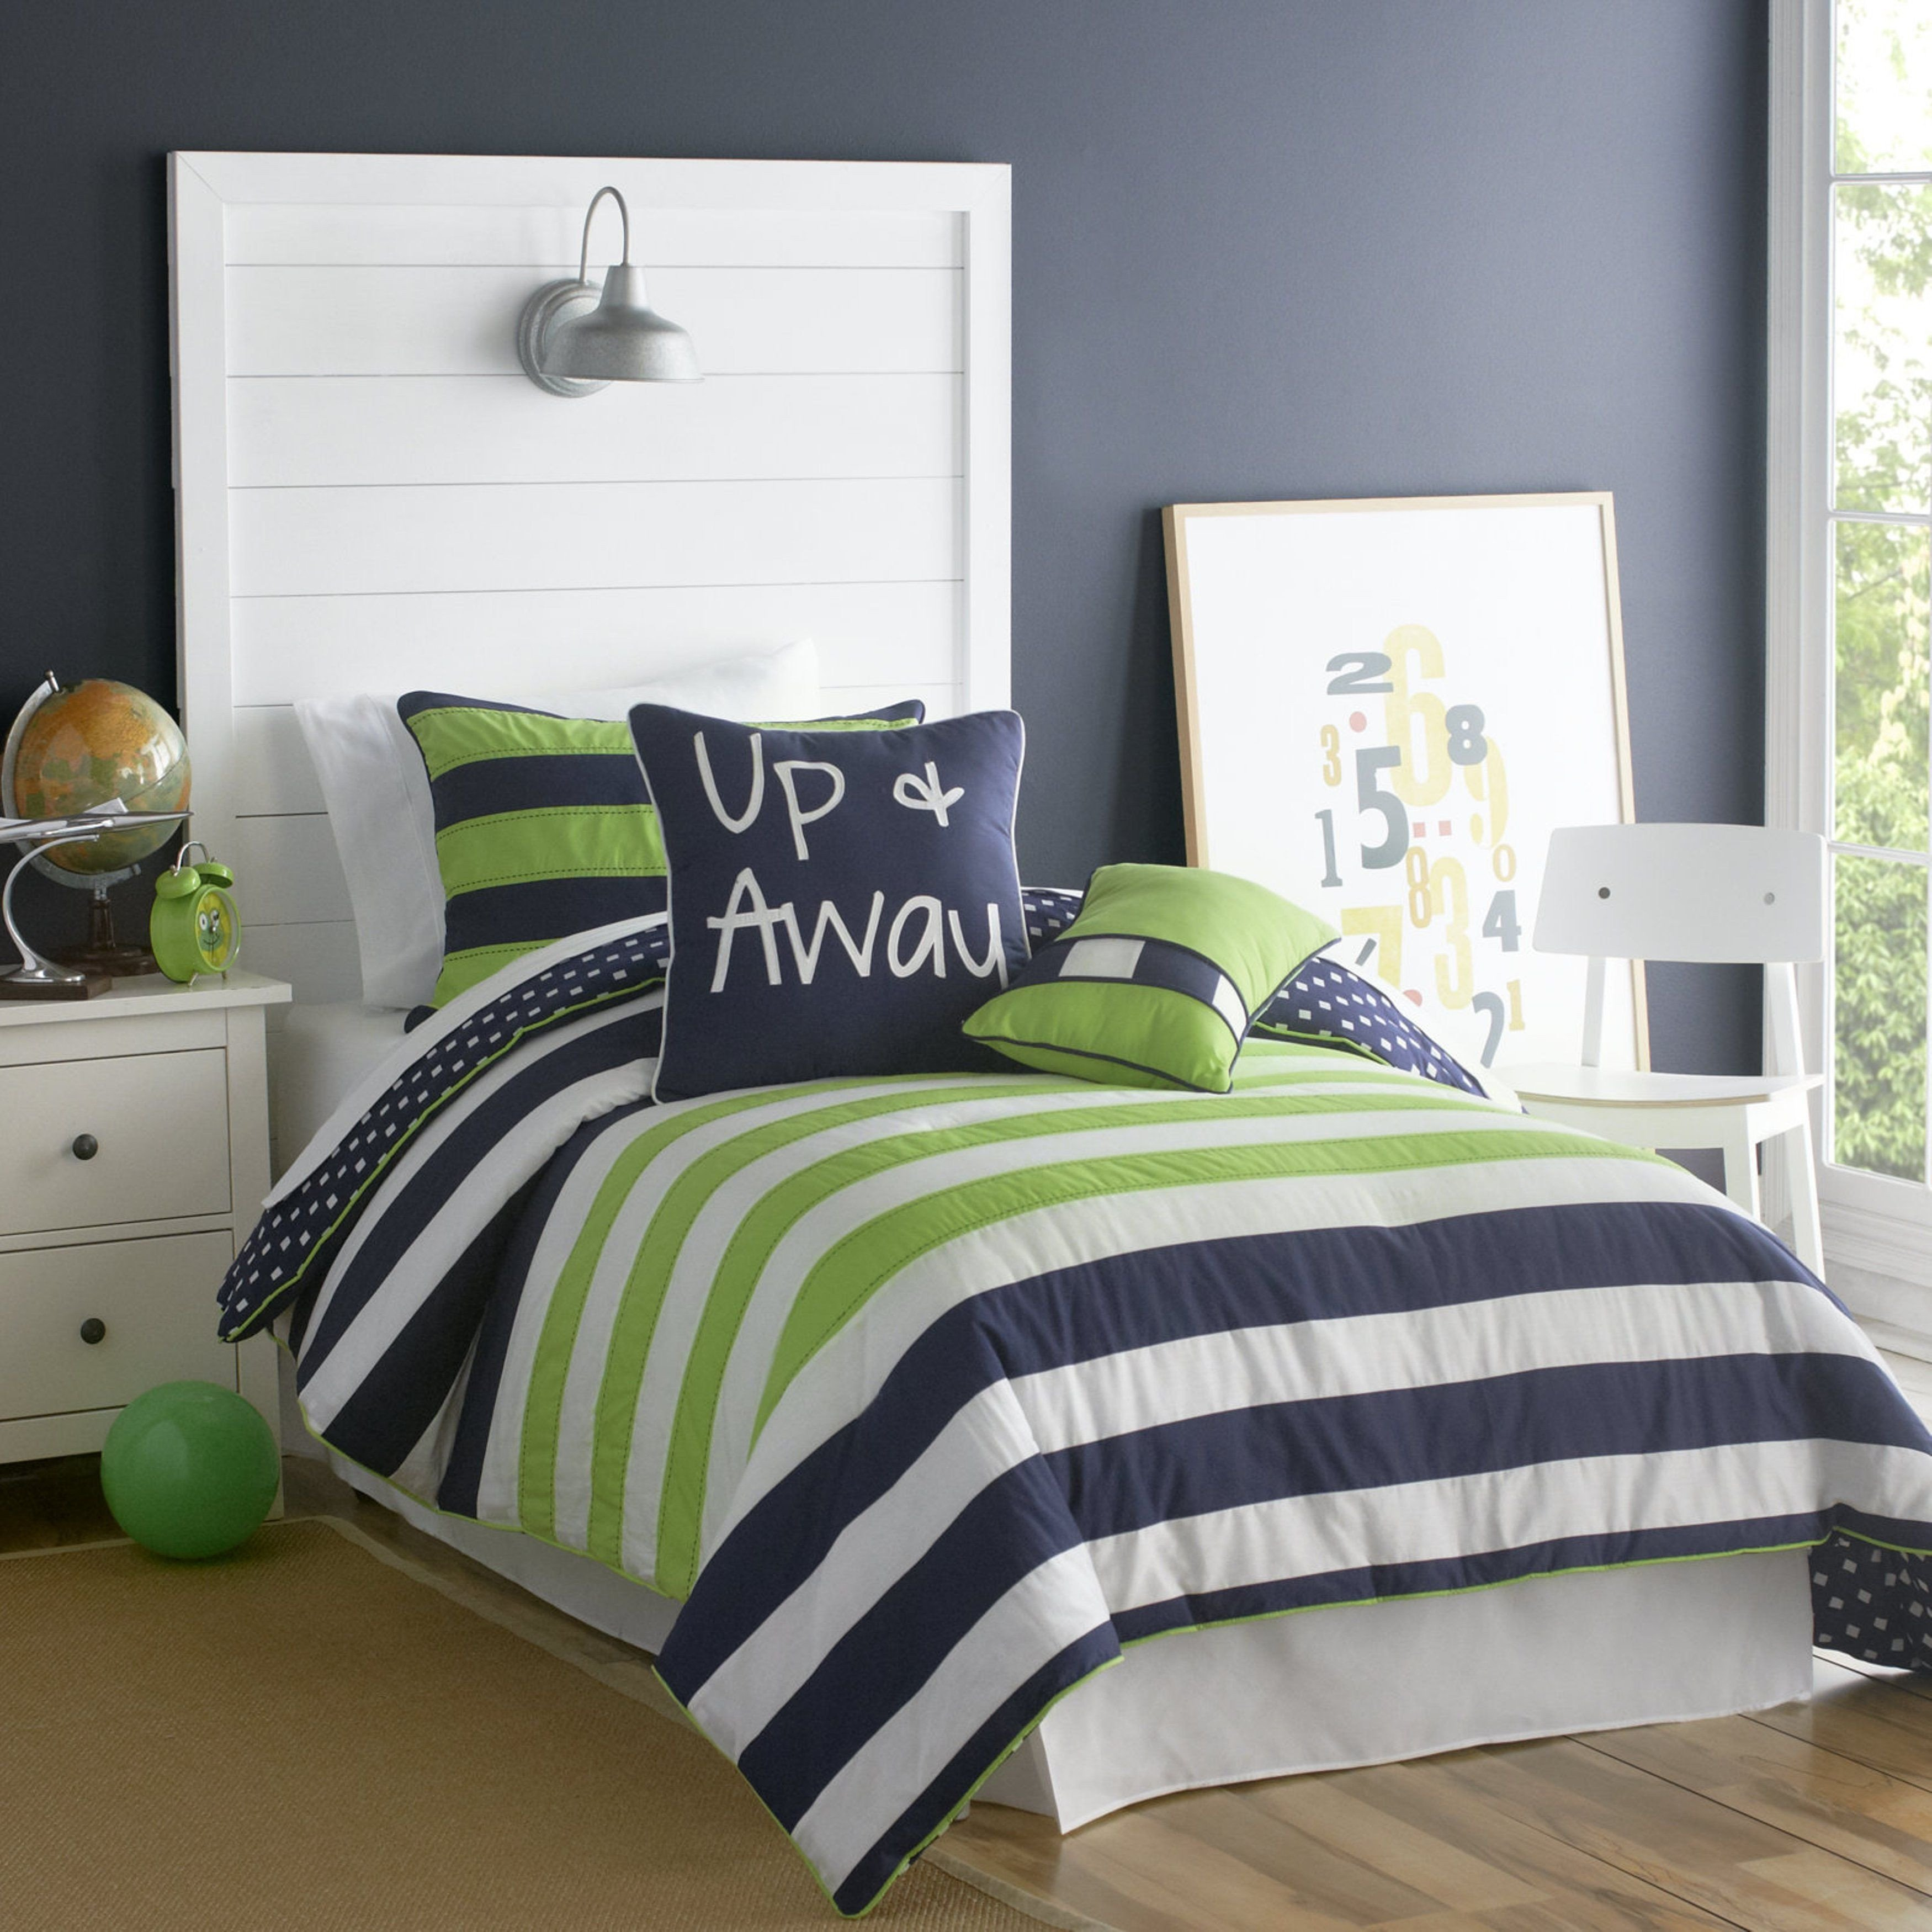 Boy Full Bedroom Set Beautiful Vcny Big Believers Up and Away 3 Piece forter Set